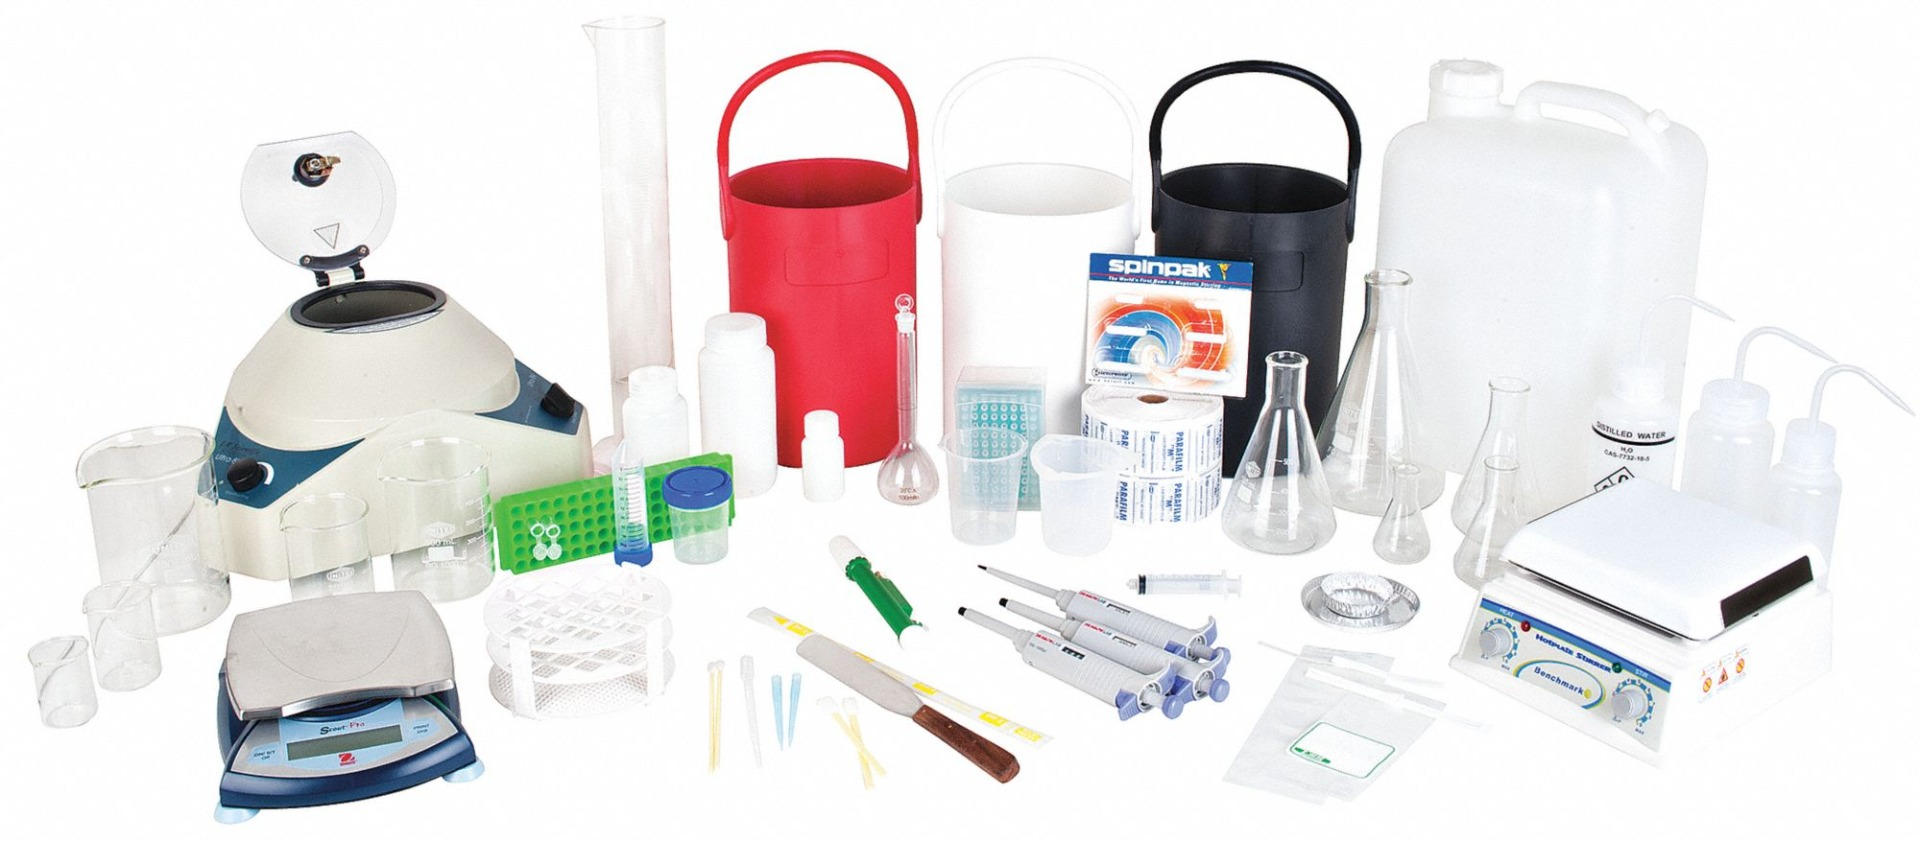 General Laboratory Products Others